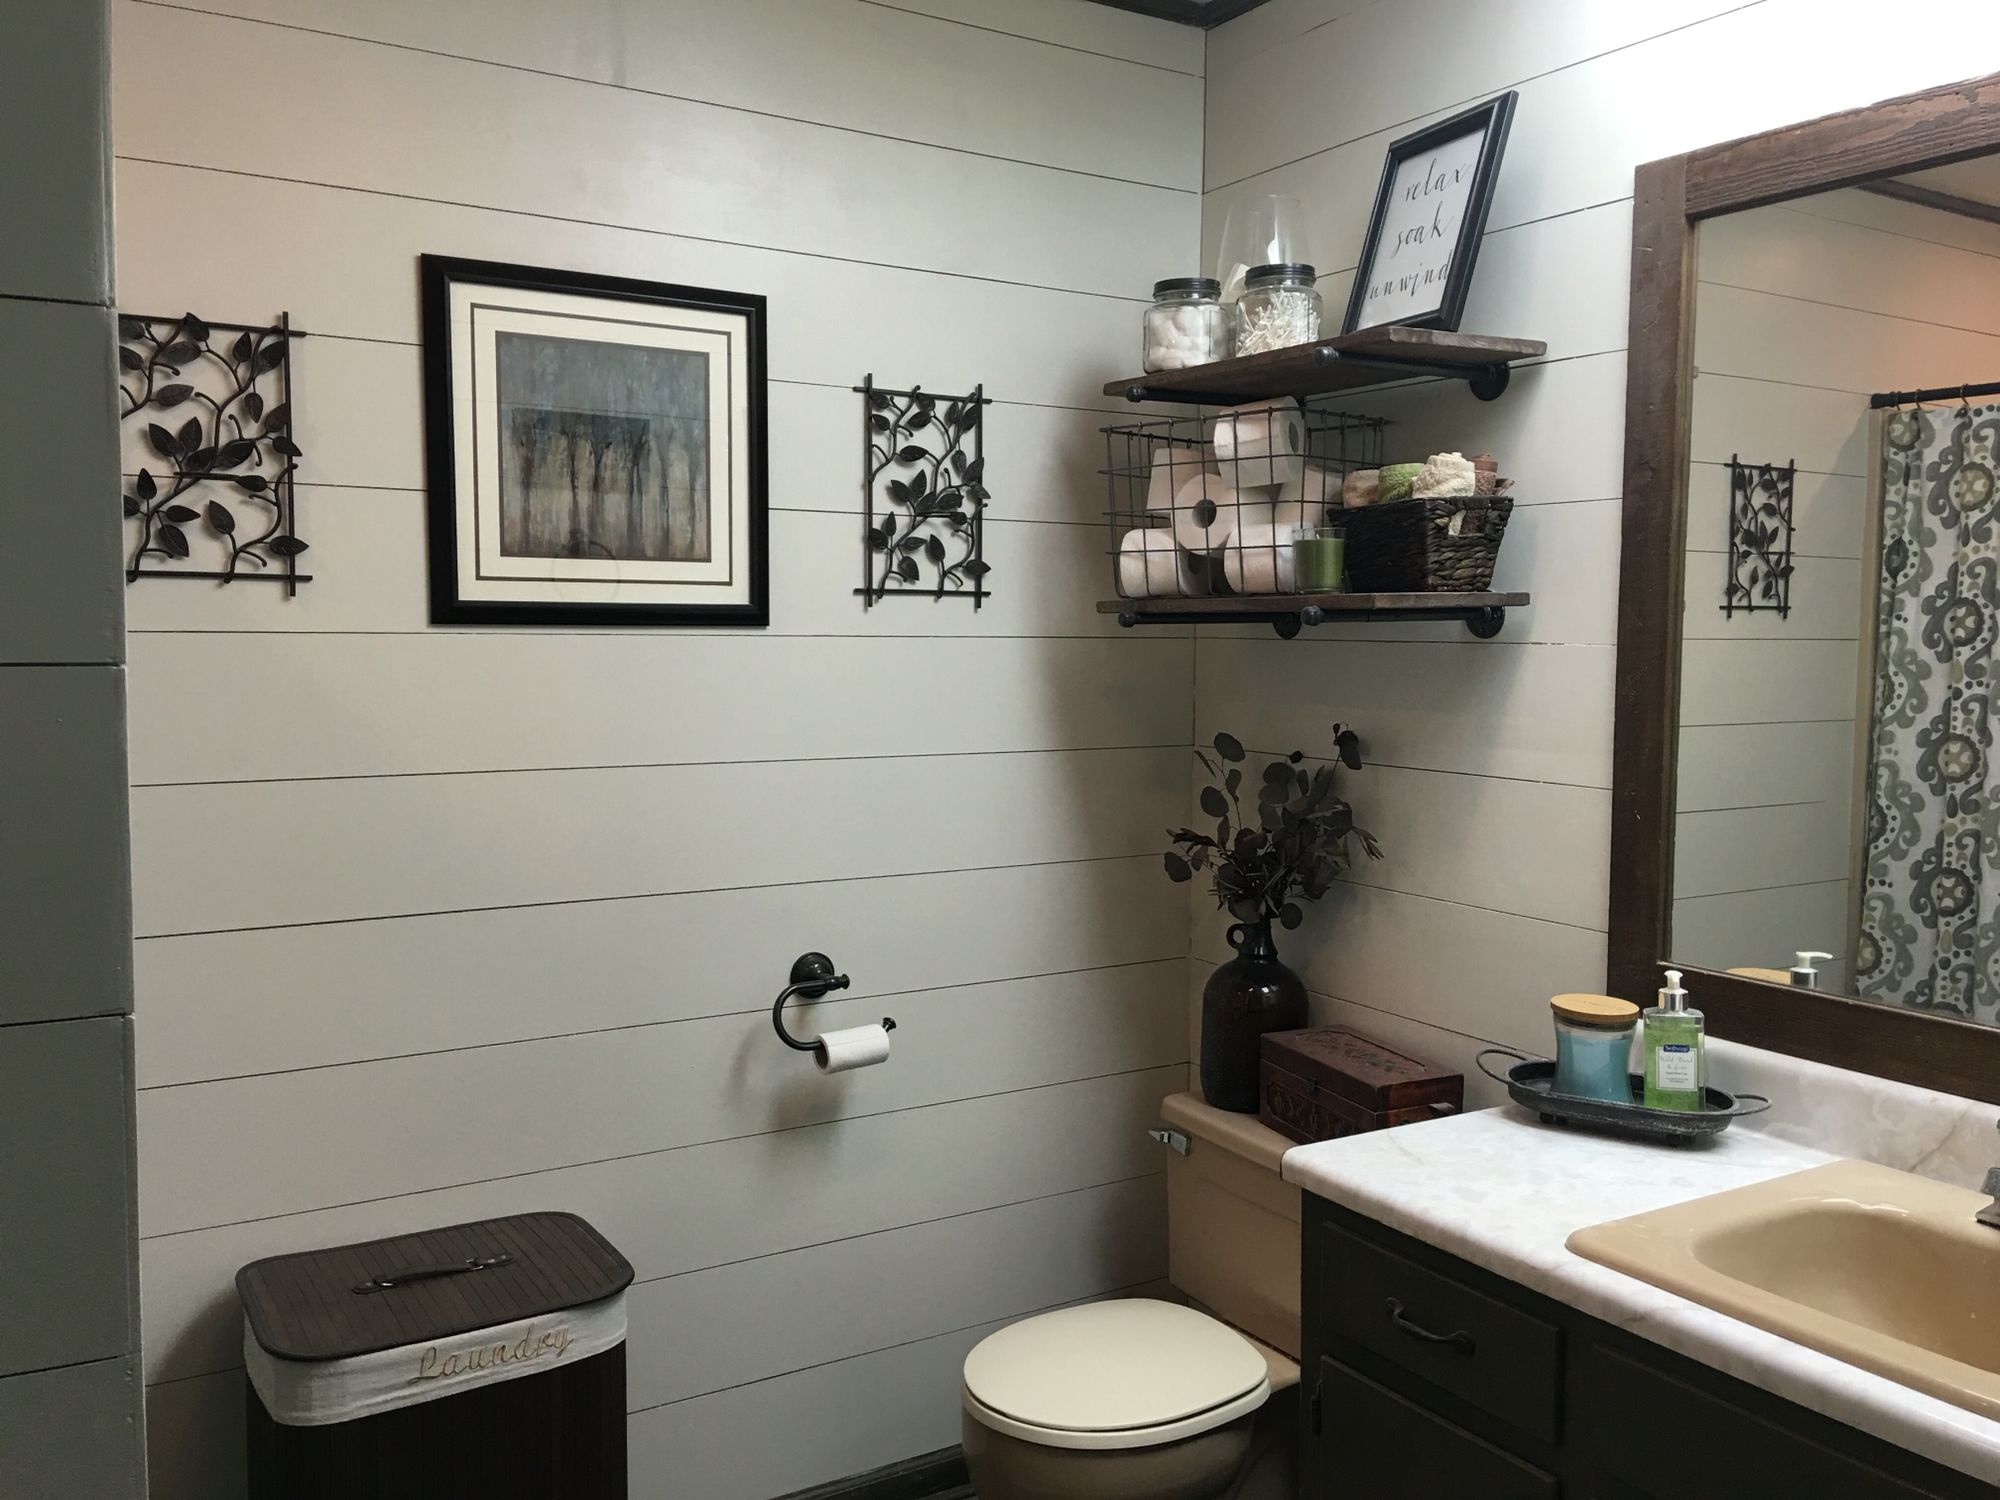 White duck by Sherwin Williams paint color Faux shiplap using plywood